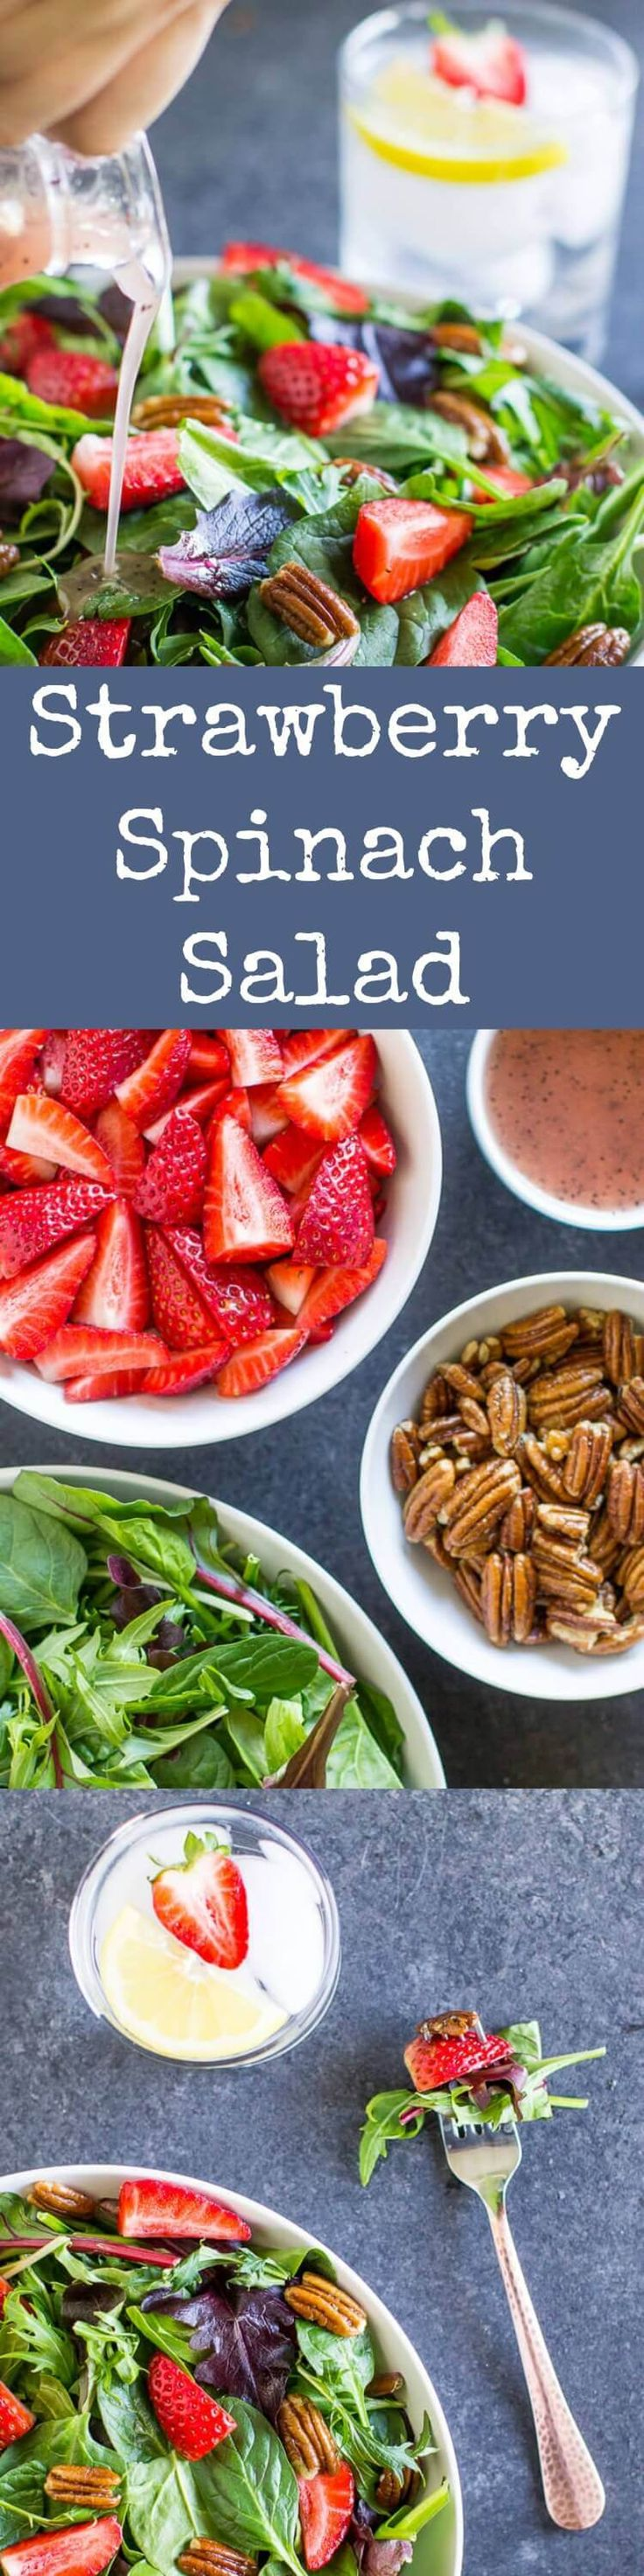 A fresh and easy Strawberry Spinach Salad with crunchy pecans and a sweet poppy seed dressing. Makes a great lunch and is perfect for parties! Naturally vegan and gluten free.